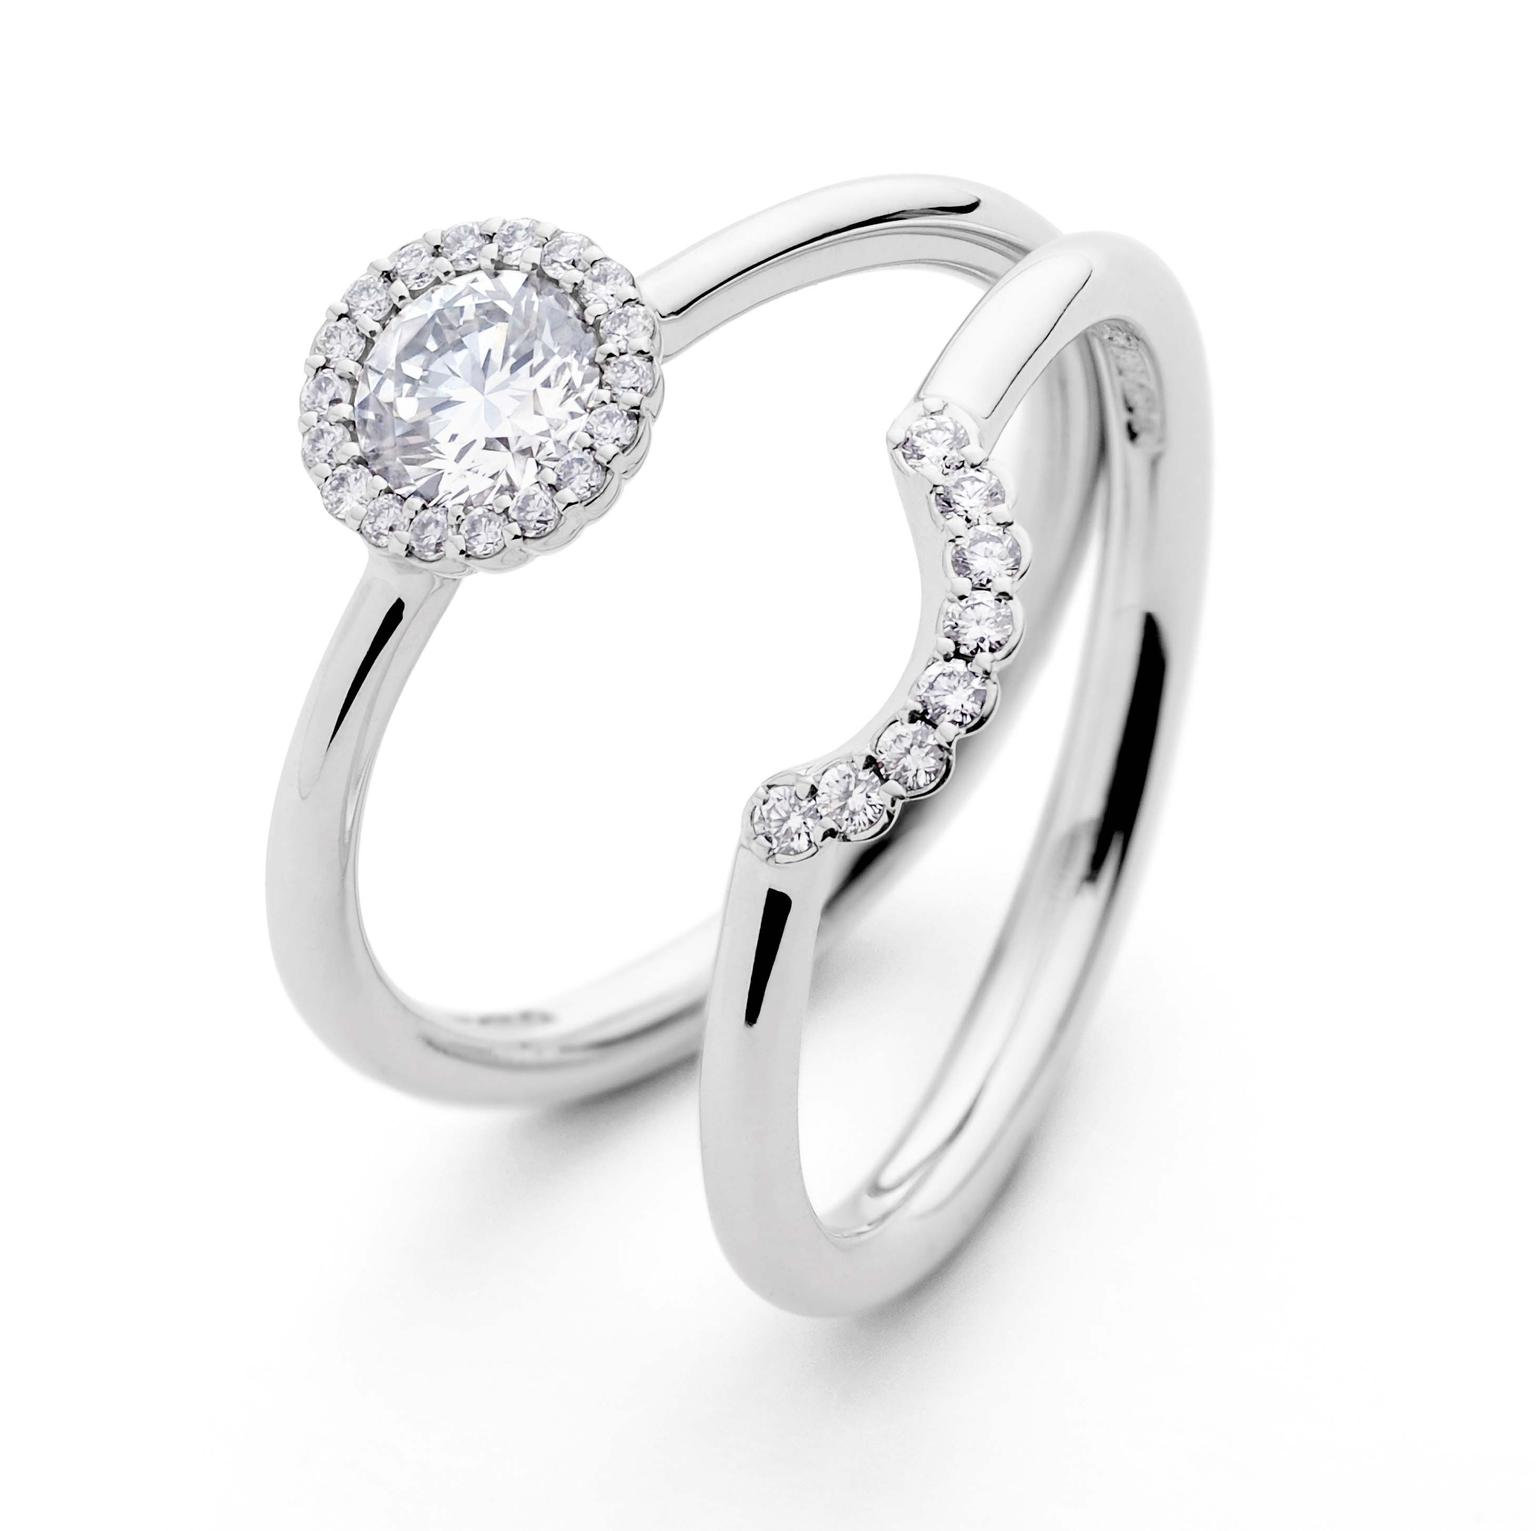 Andrew Geoghegan Cannelé engagement ring and wedding band in white gold with diamonds.